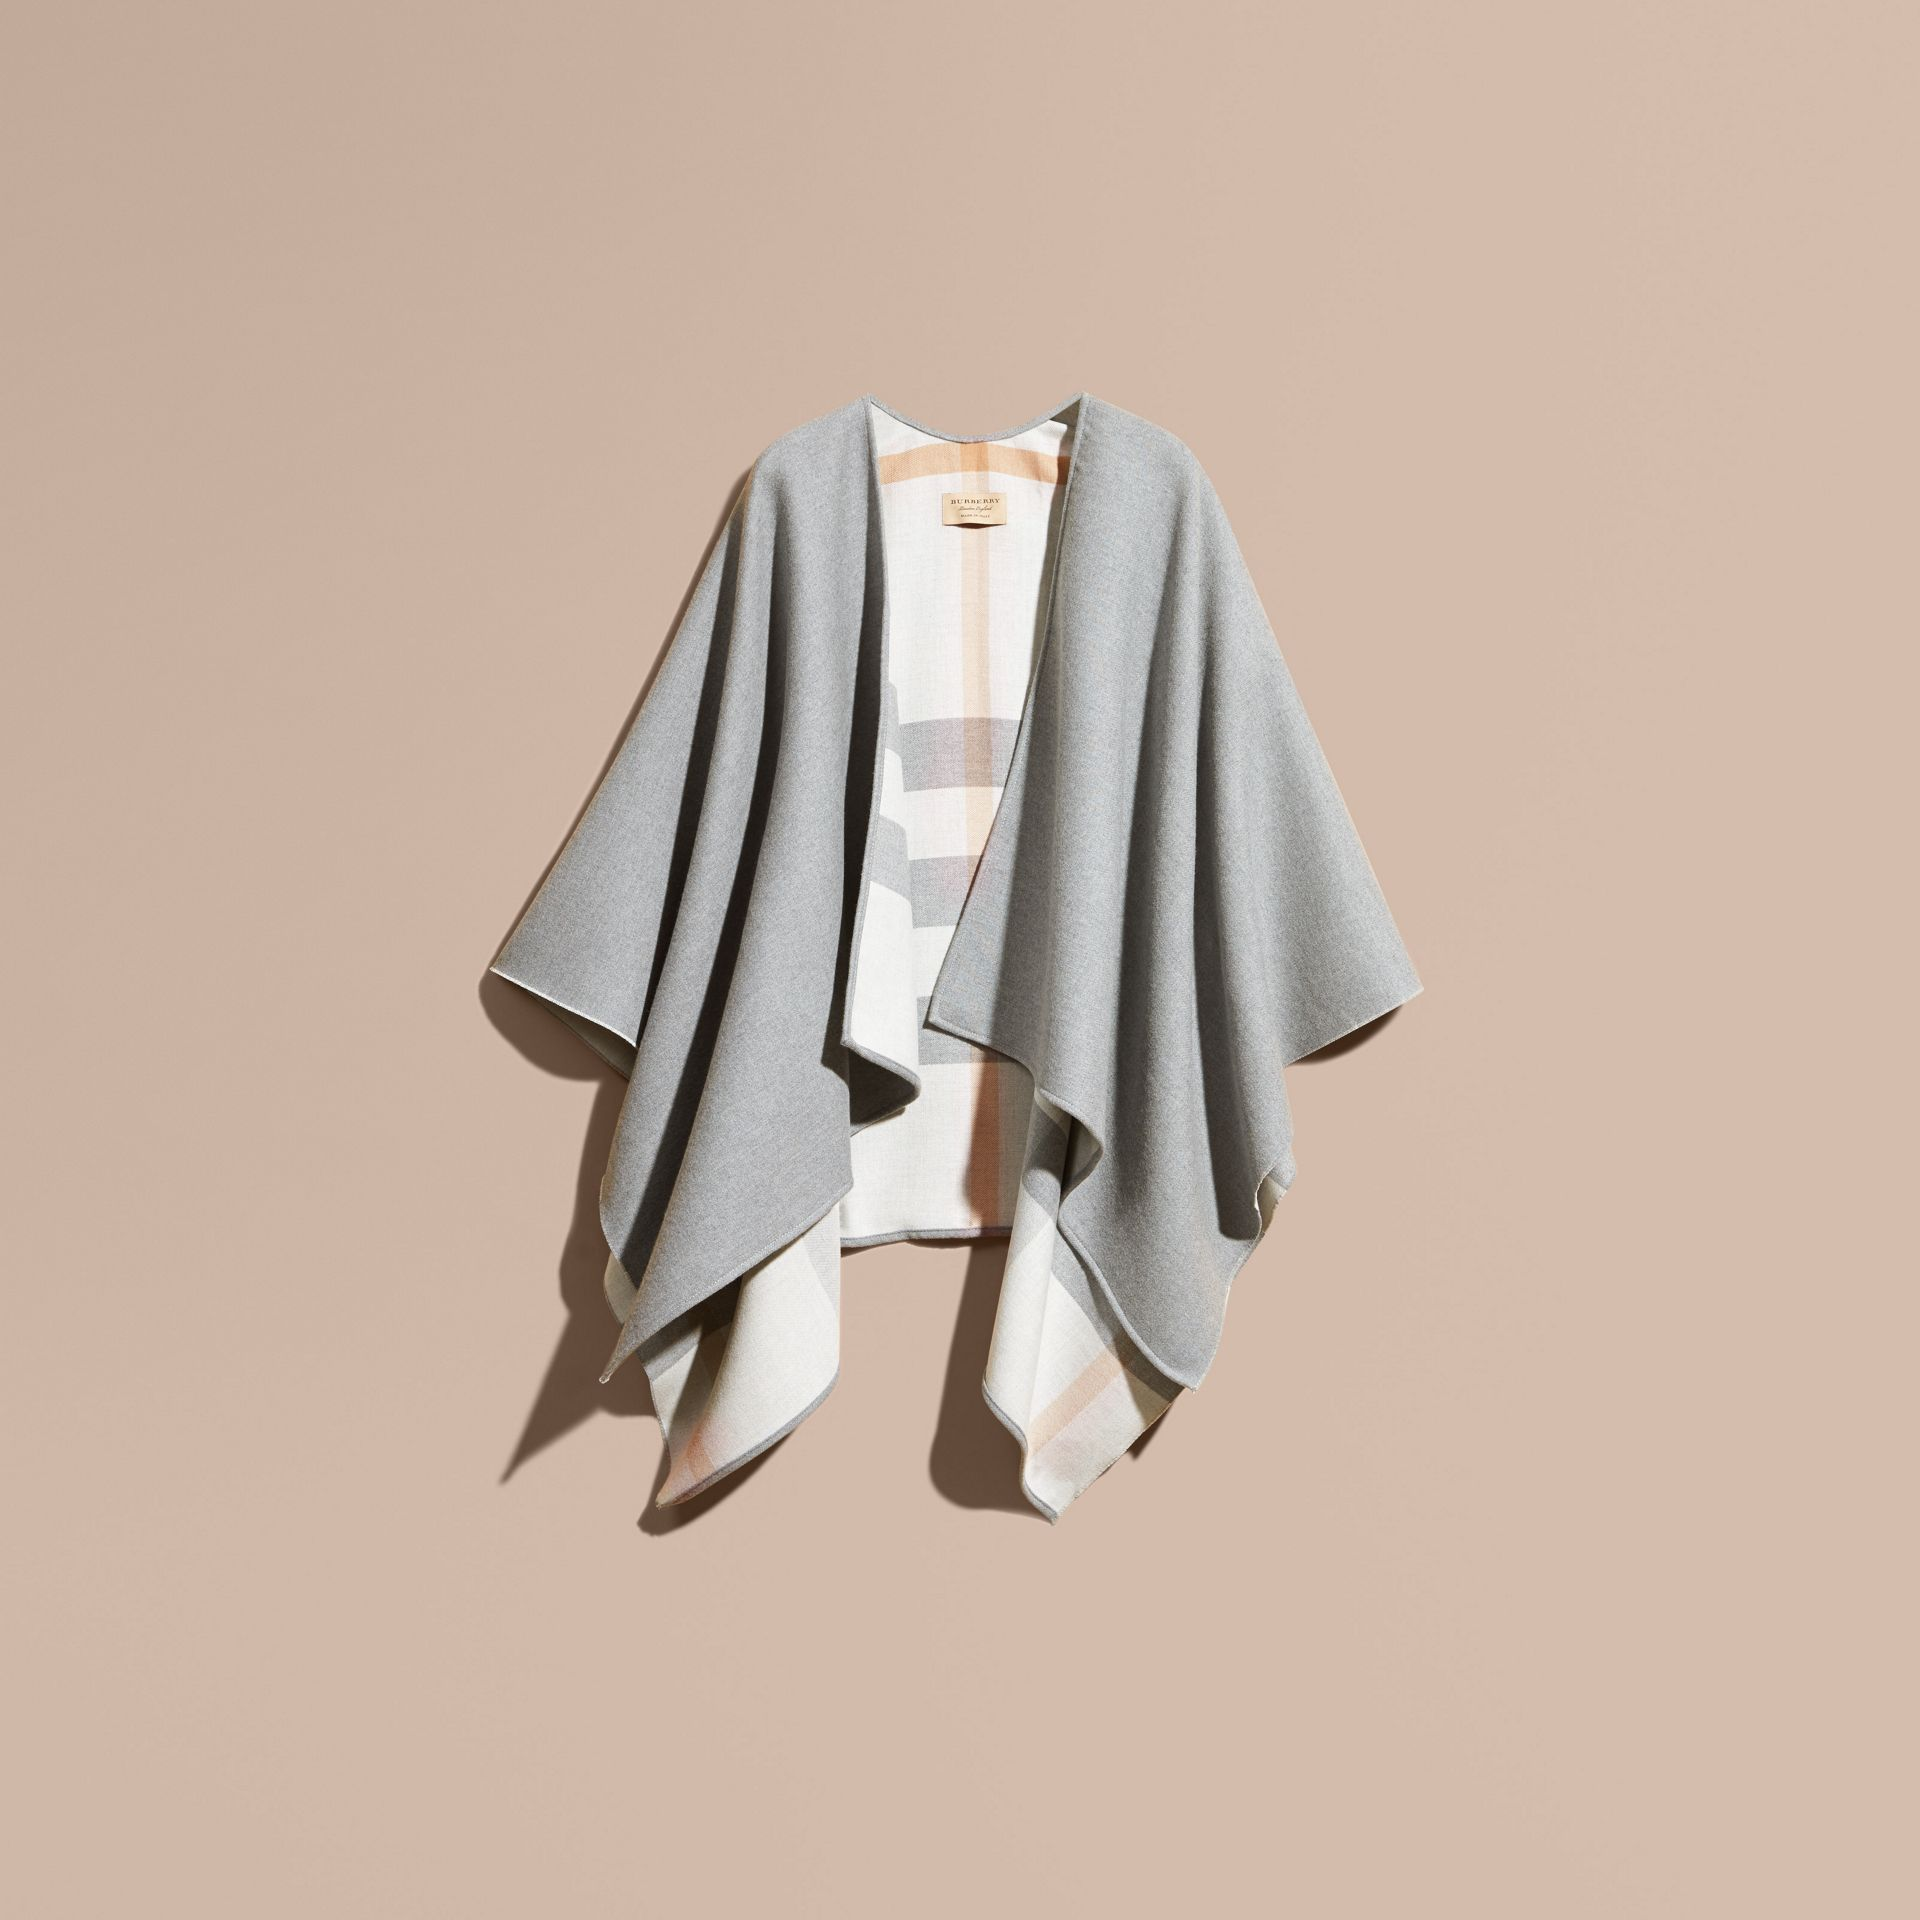 Reversible Check Merino Wool Poncho in Light Grey - Women | Burberry - gallery image 4